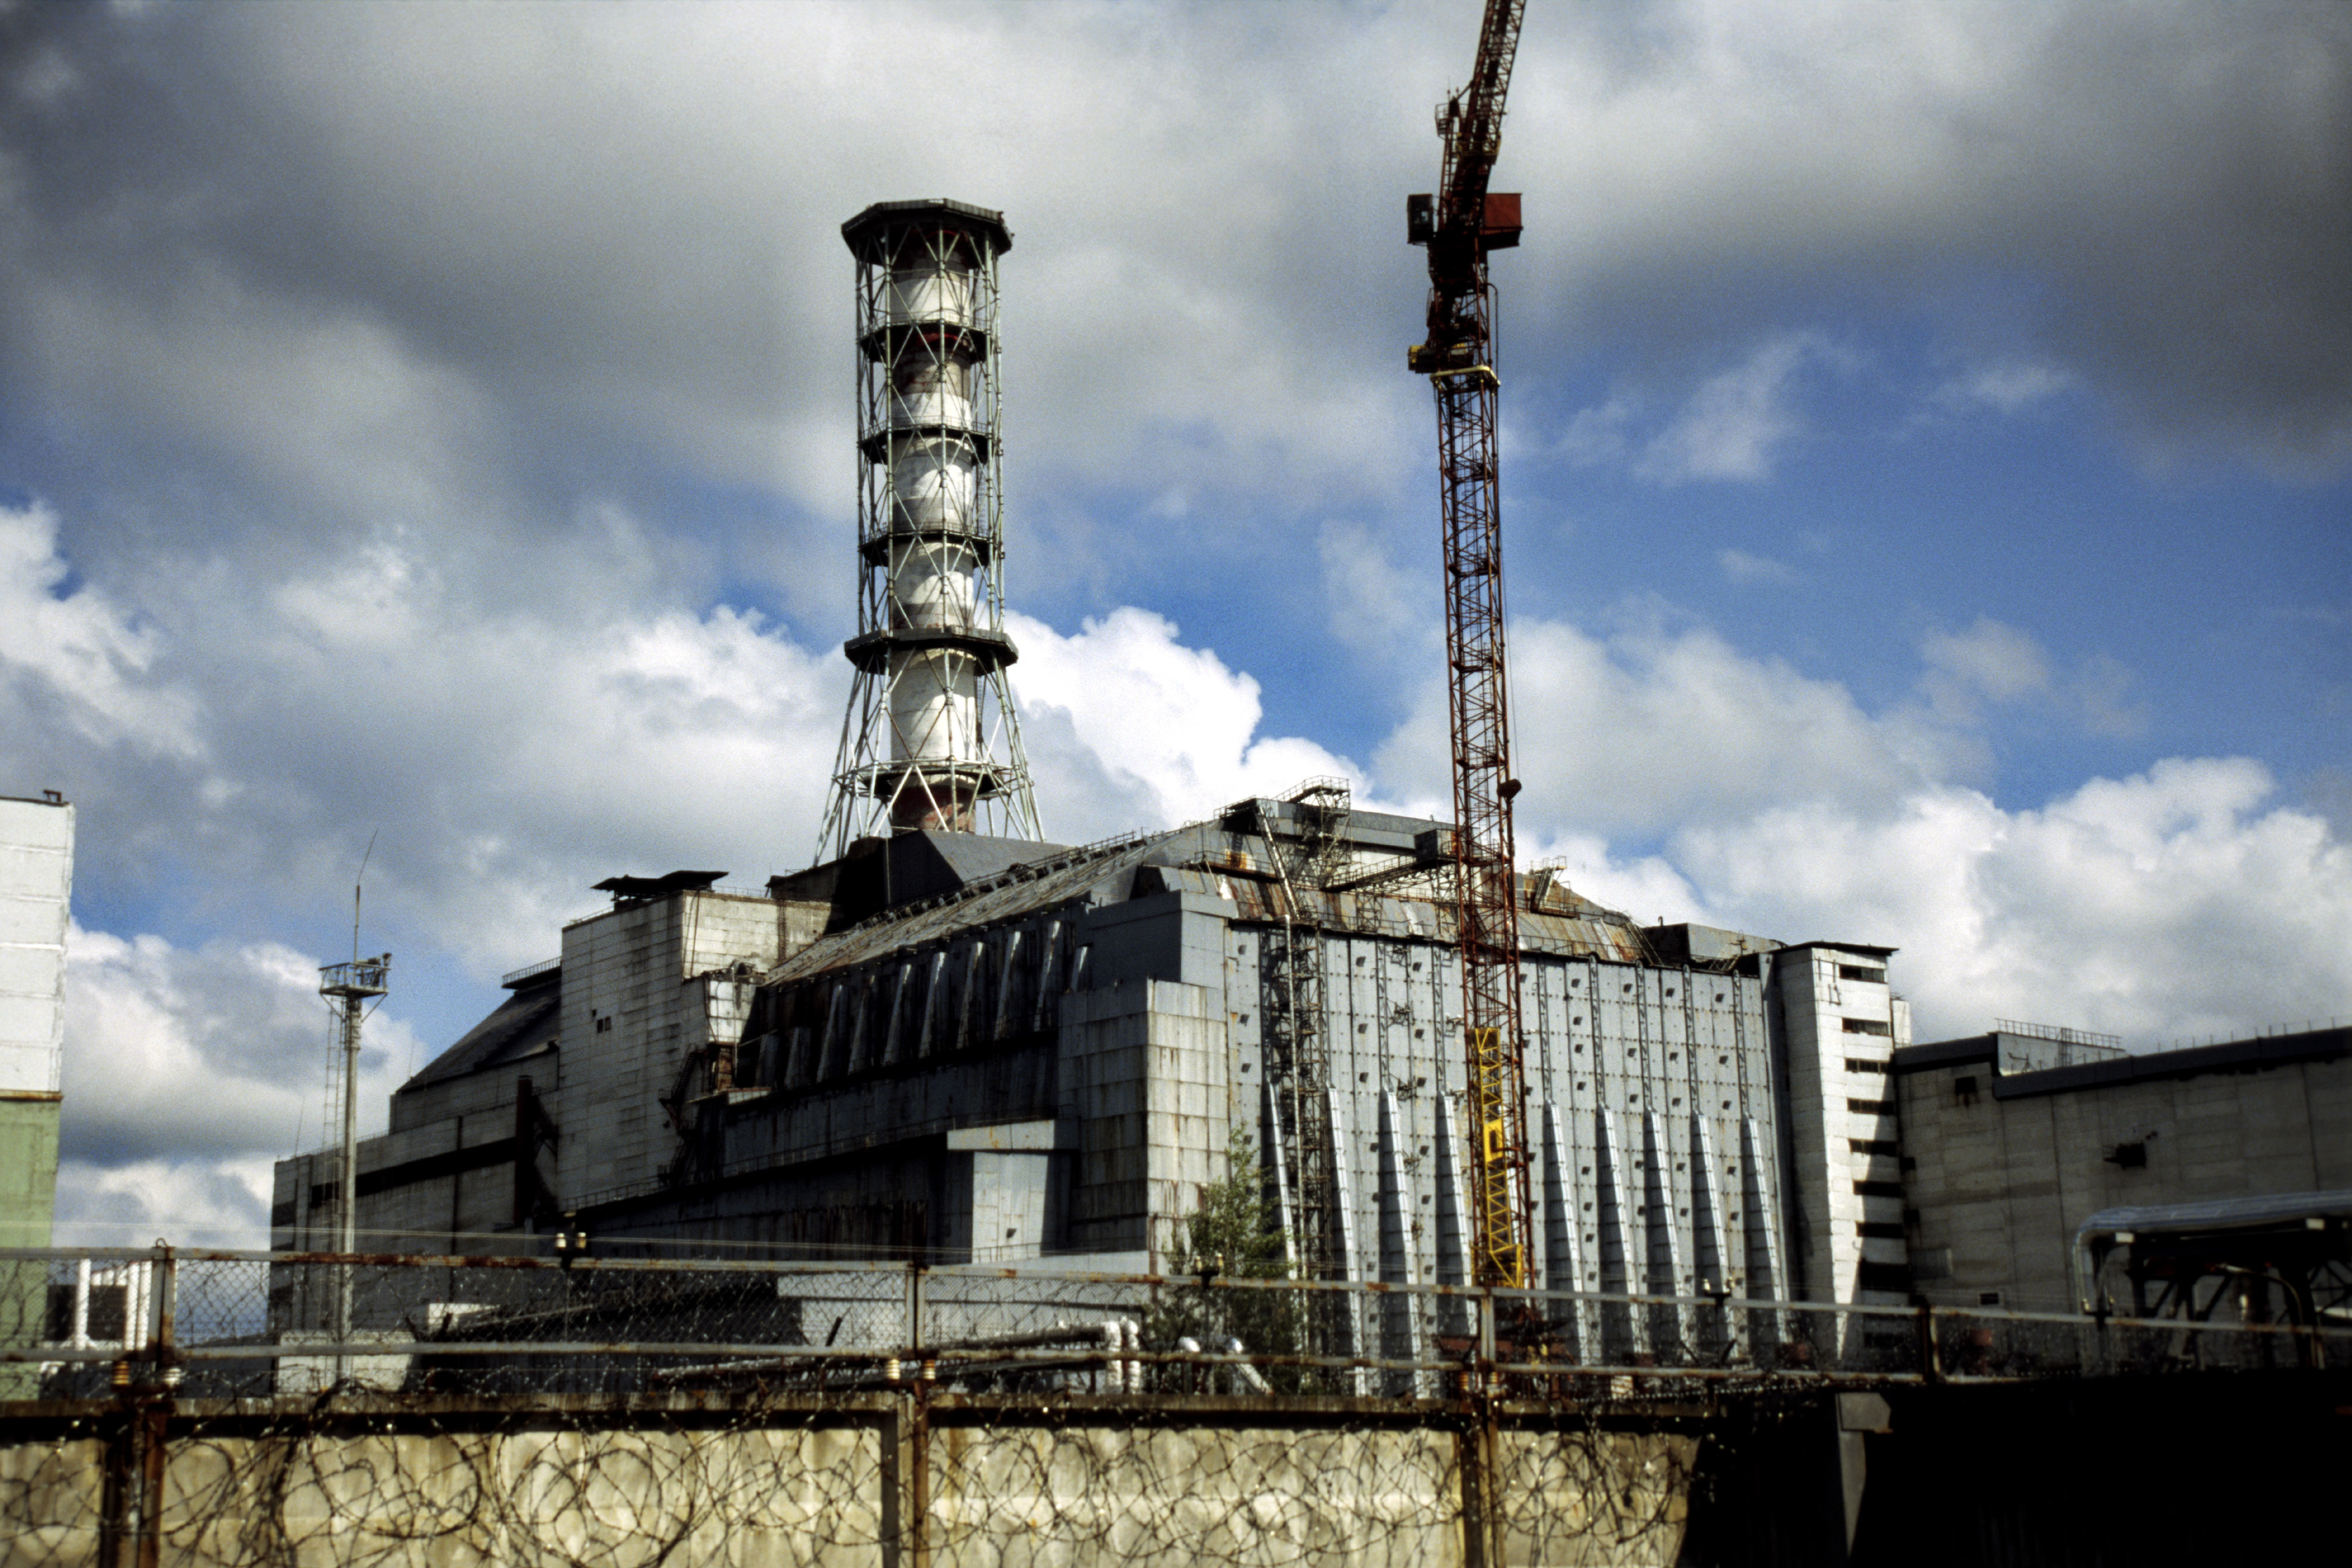 Chernobyl Nuclear Plant disaster HD Wallpaper